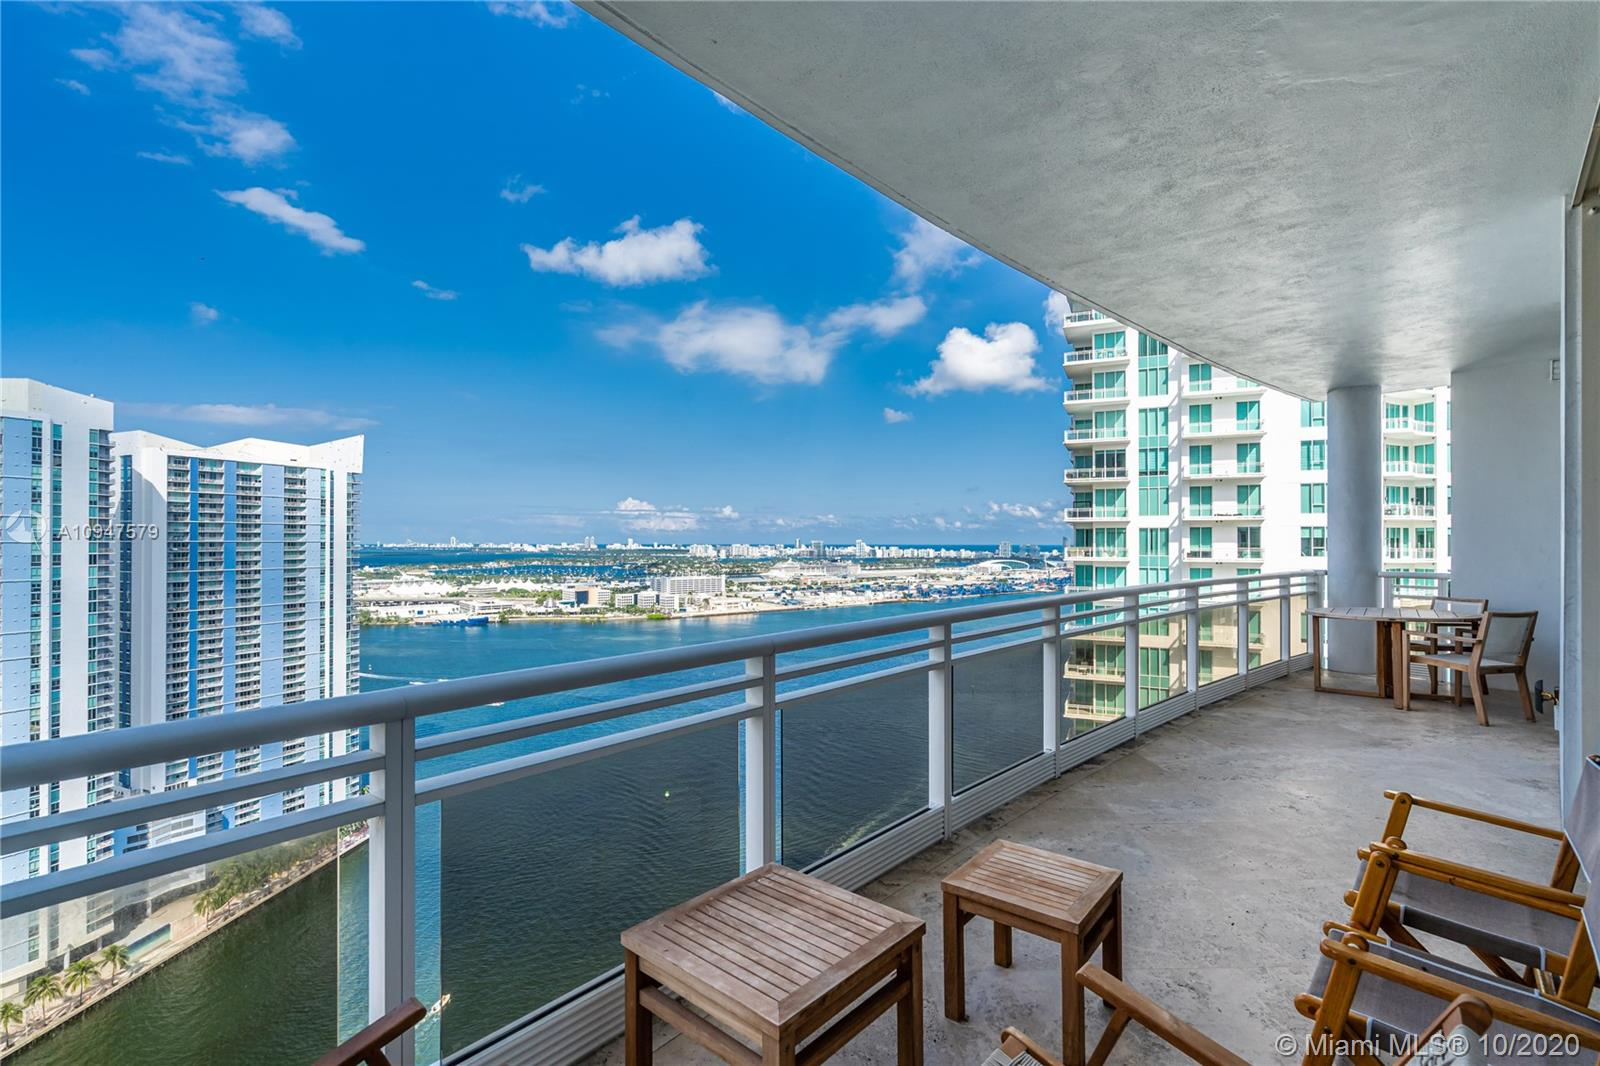 Amazing unit located in the 35th floor that offers tremendous views to Biscayne Bay, Miami River and stunning city views & skylights at night. This unit has been professionally remodeled and designed and is offered fully furnished and ready to move in. Bonus feature is the extra high ceilings (higher than lower floor units) creating a great feeling of amplitude and abundance of natural light. Don't miss it! Enjoy the wonderful lifestyle of living on an island in the middle of Brickell and Downtown Miami.